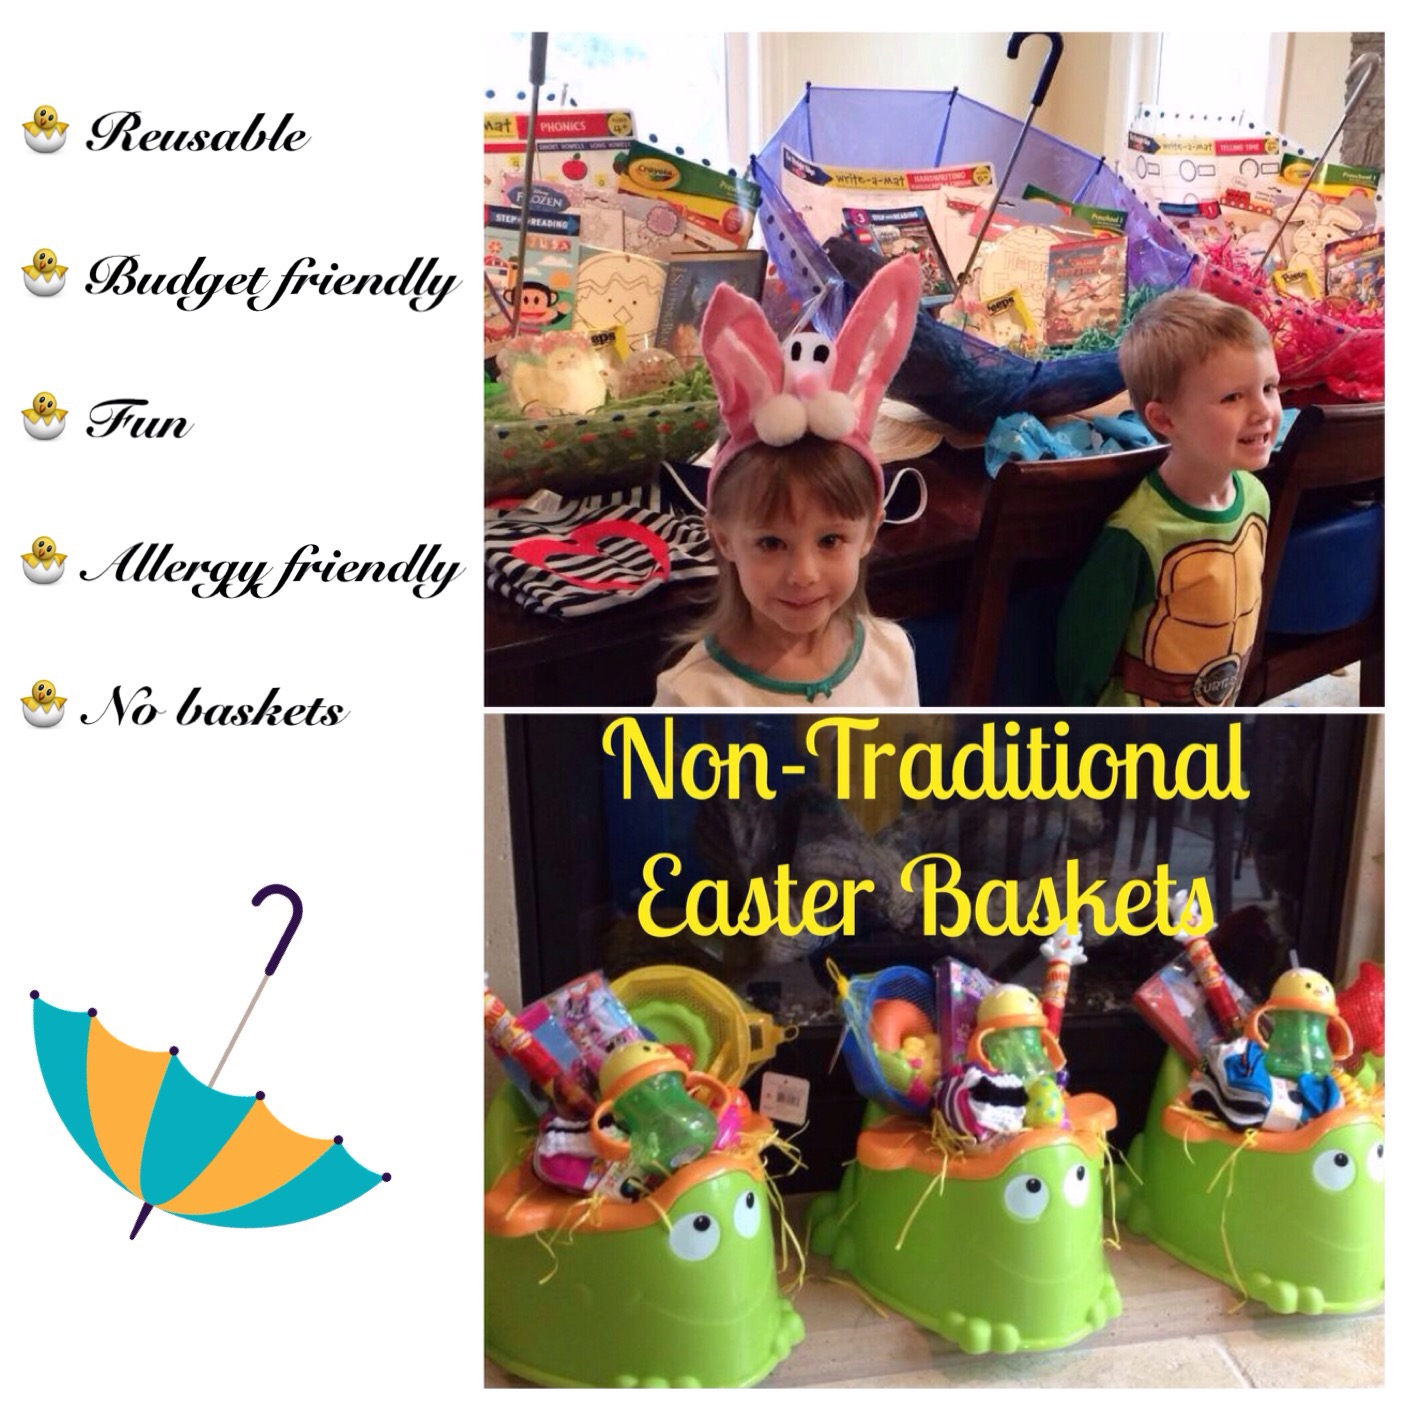 Make your own umbrella easter baskets non candy centered allergy umbrella easter baskets negle Image collections